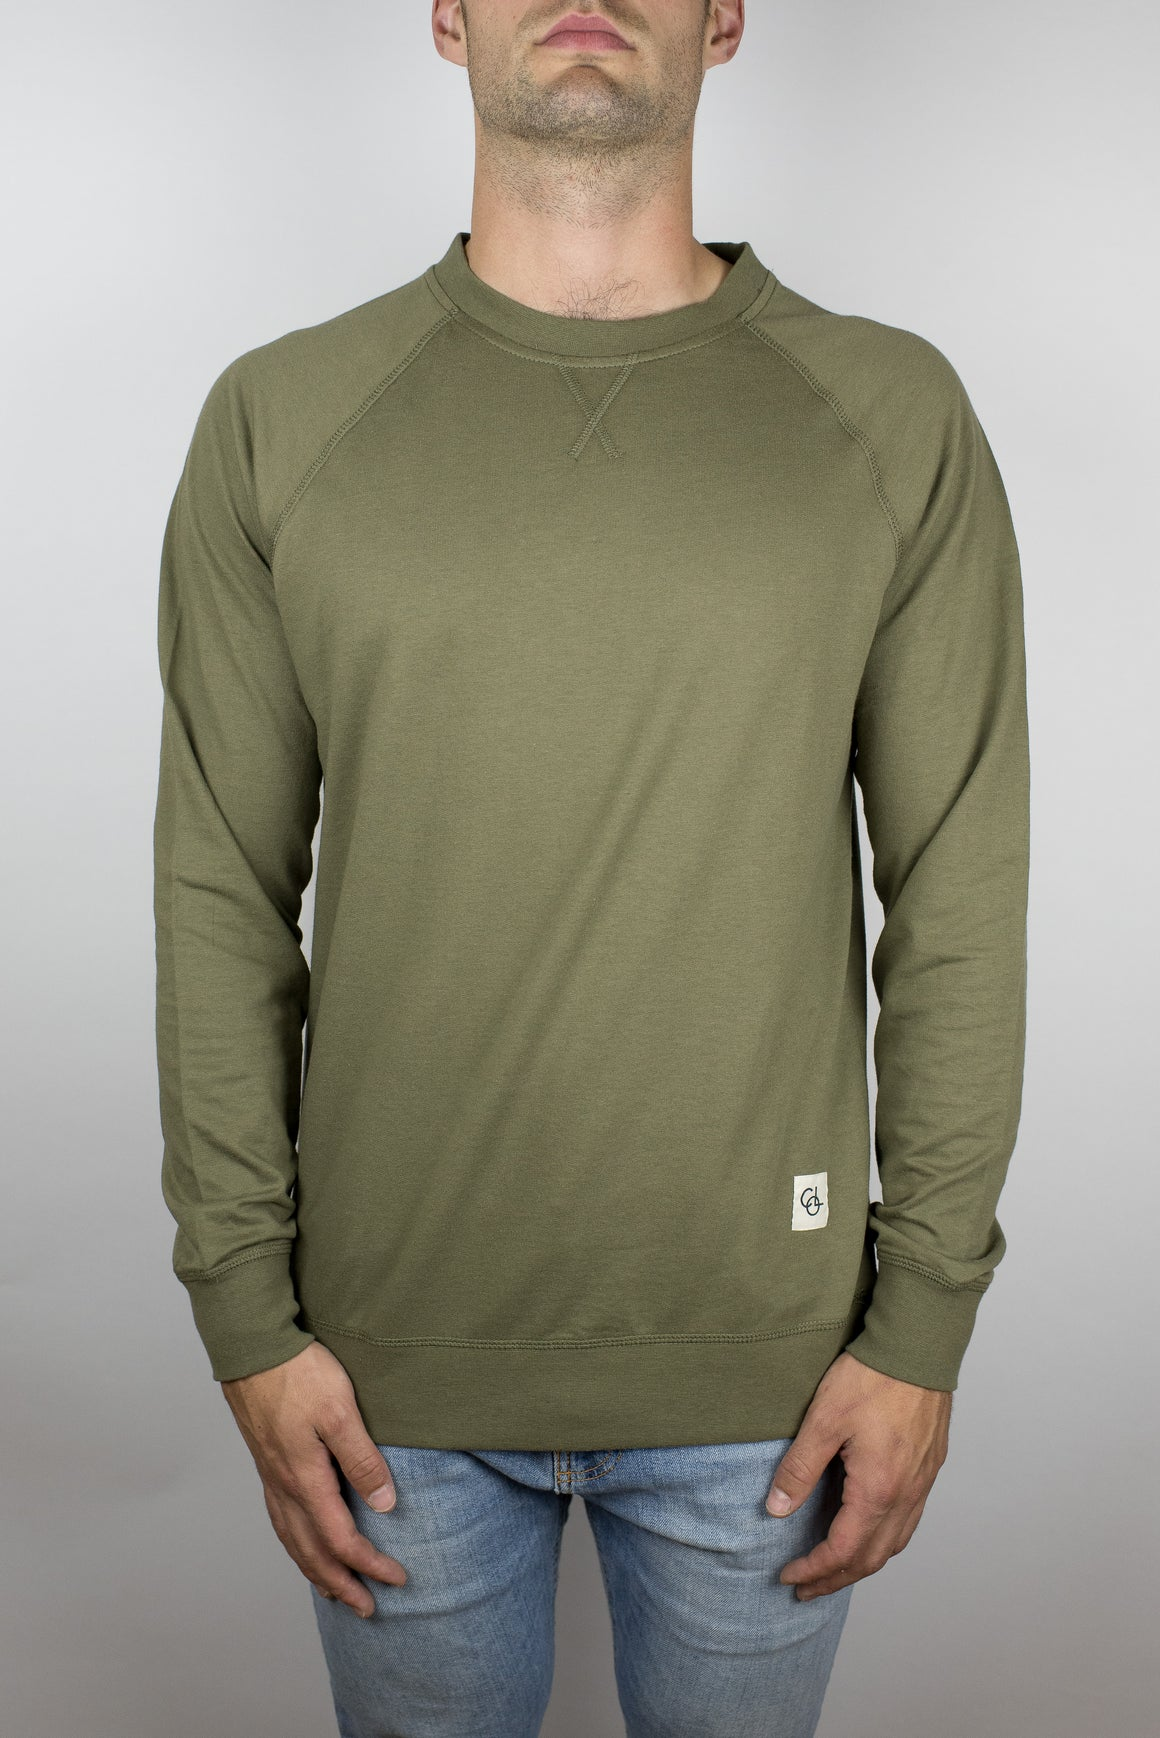 The Passion Raglan in Olive